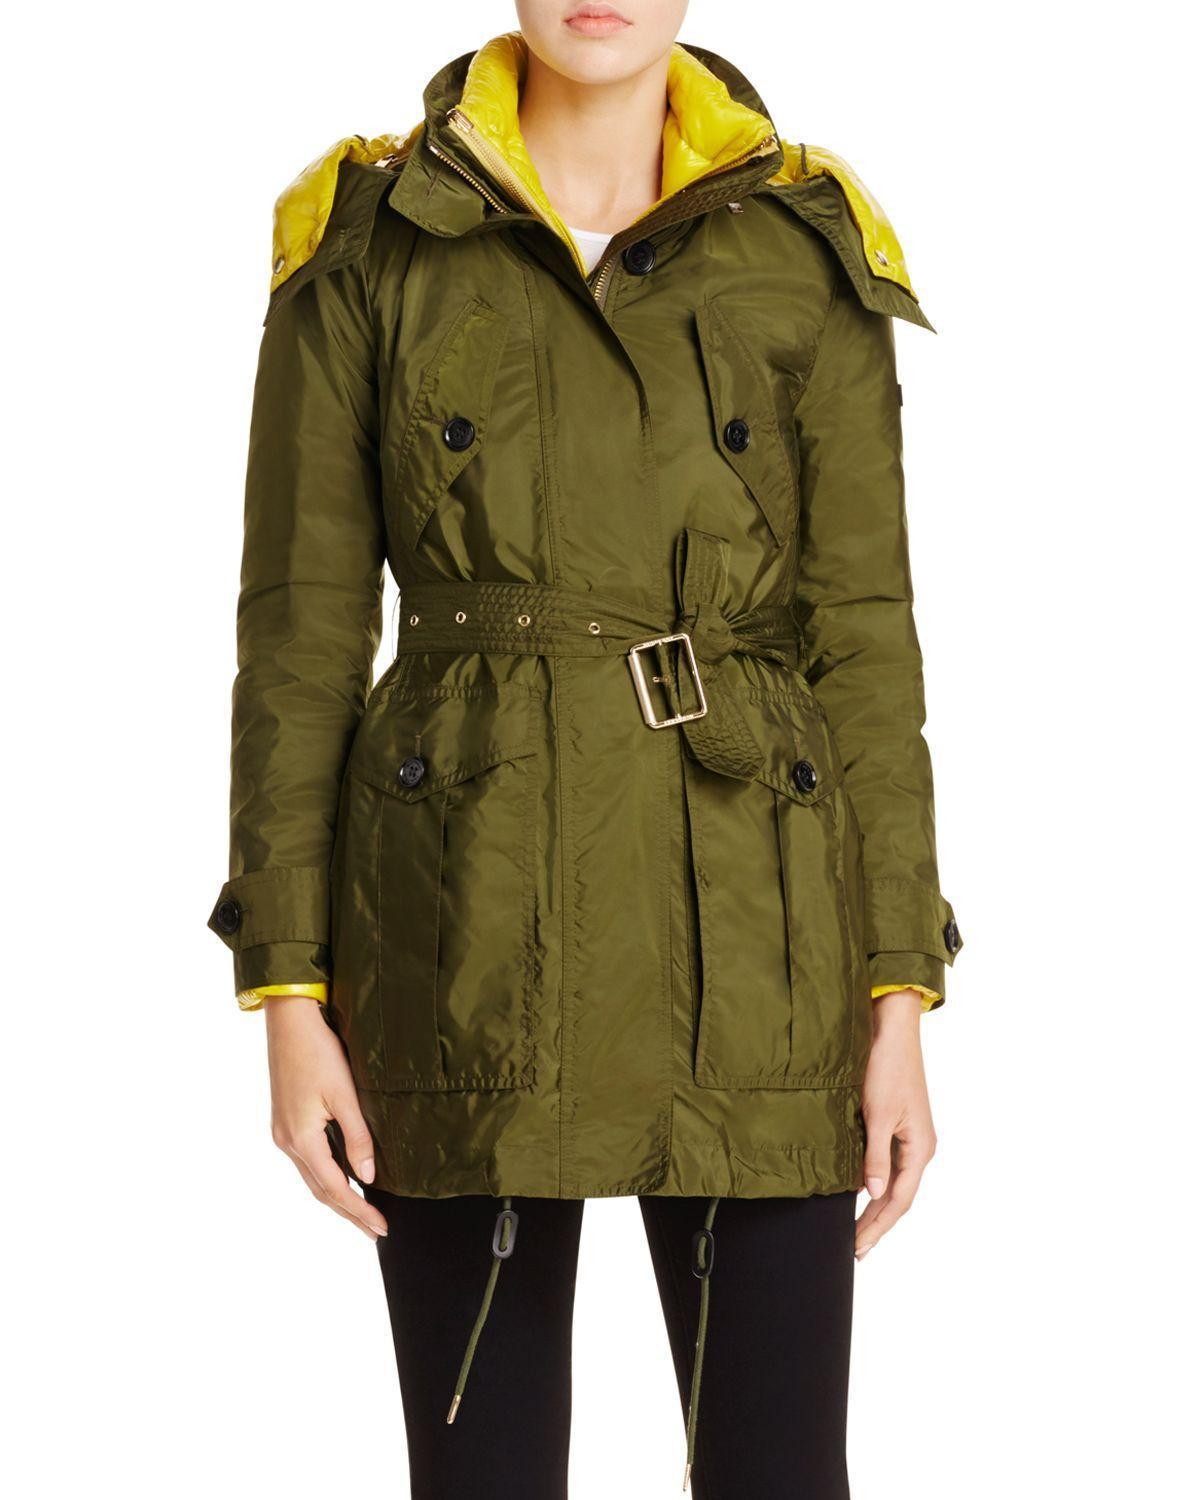 $1395 Burberry Chevrington Parka-Quilted Puffer Warmer Jacket Hooded Coat 4- 38